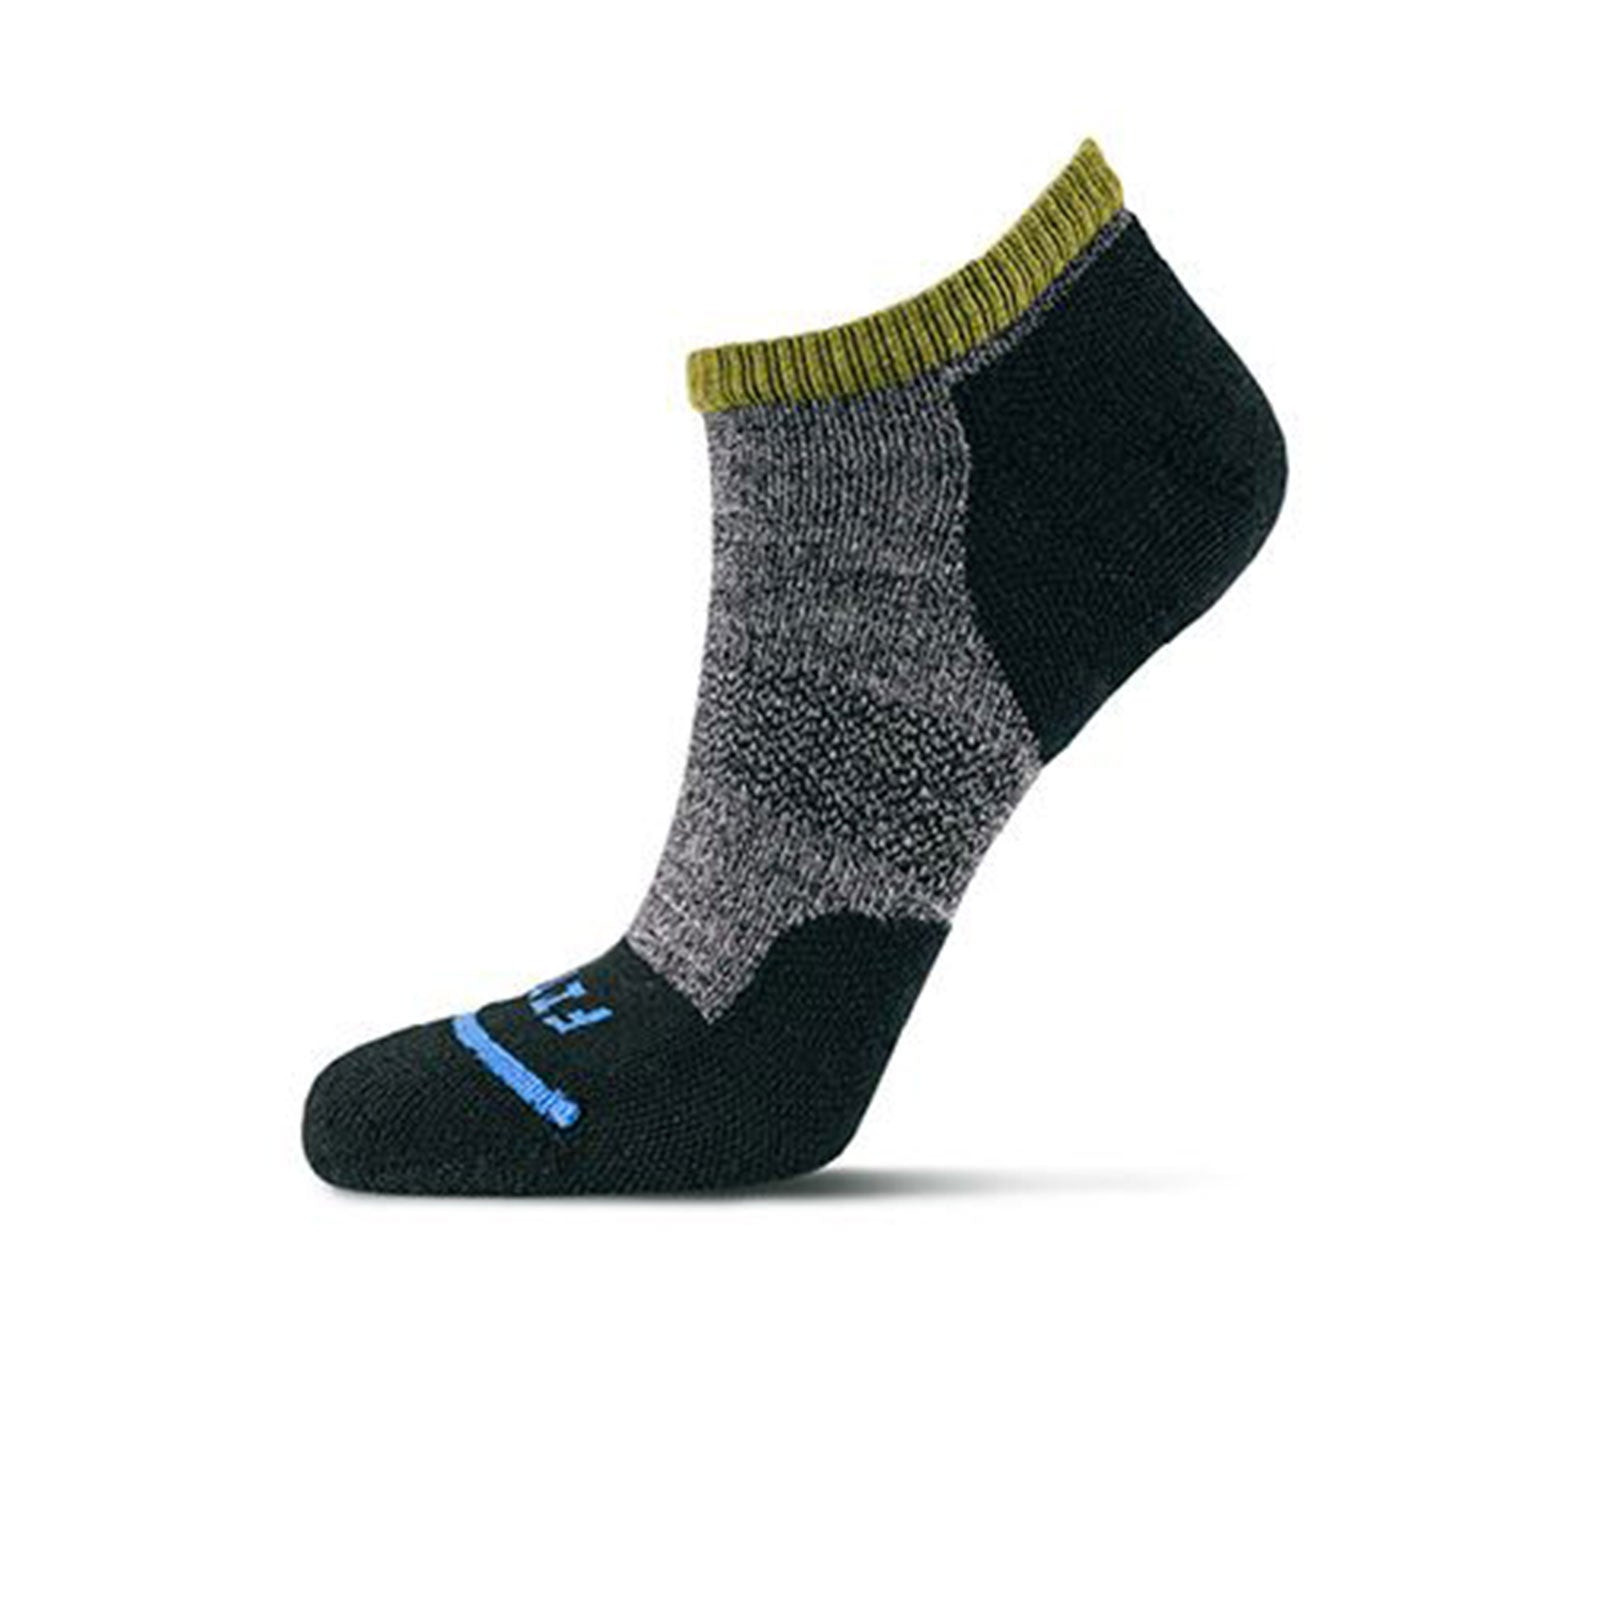 Fits Micro Light Runner Low (Unisex) - Coal Socks - Life - No Show - The Heel Shoe Fitters